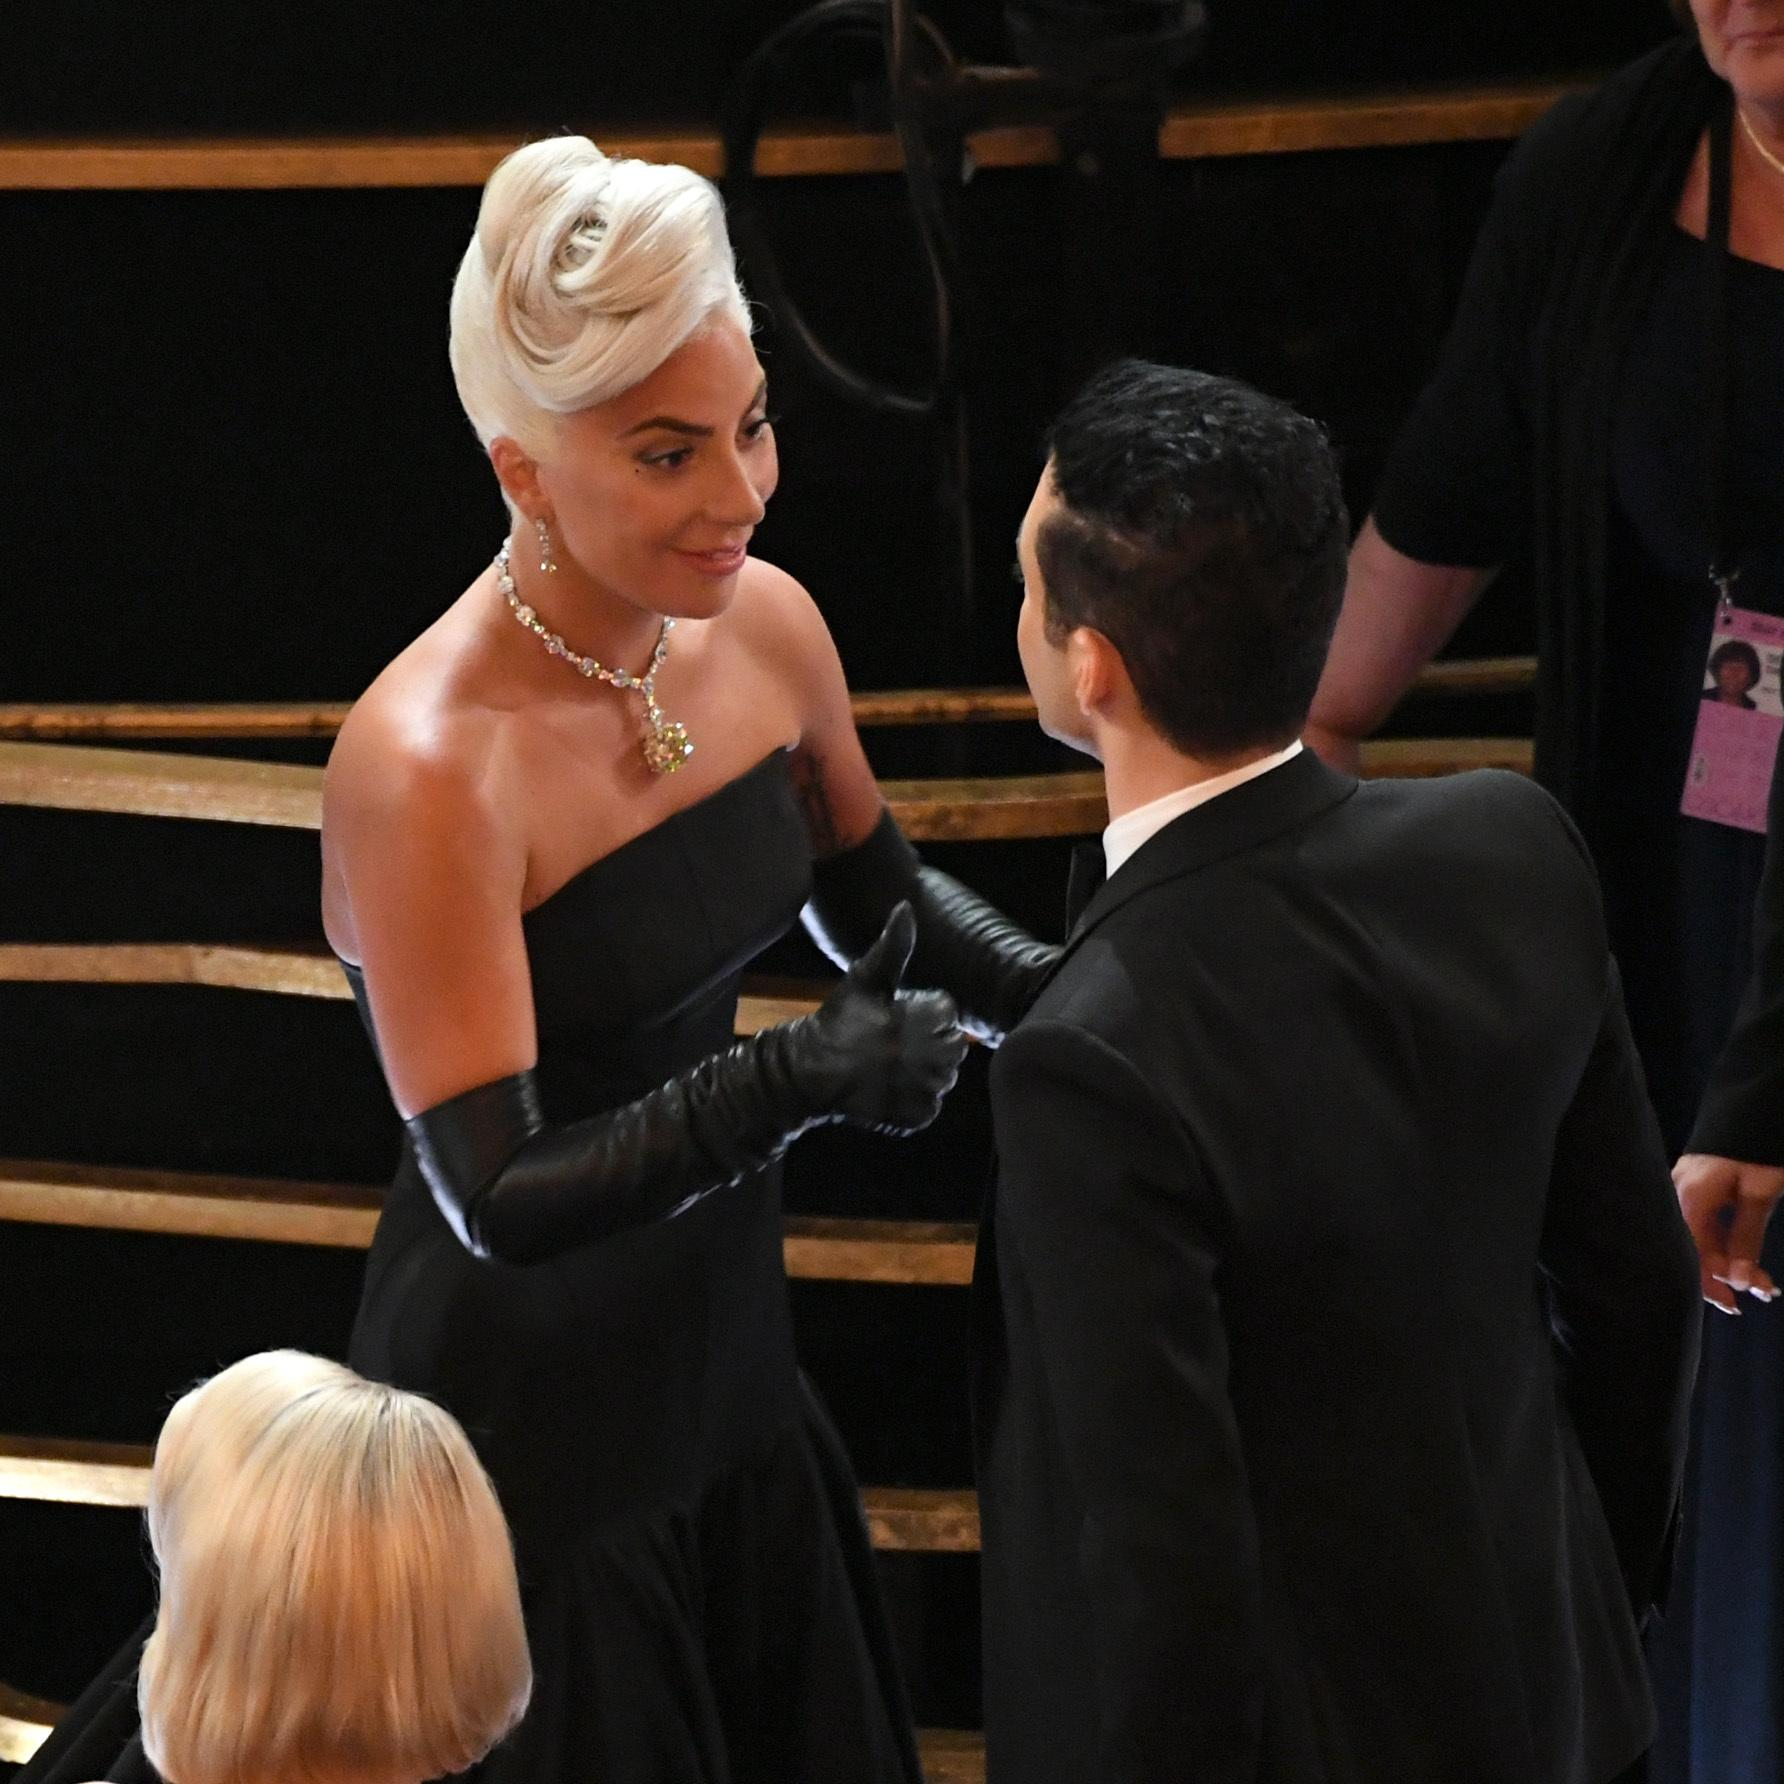 HOLLYWOOD, CALIFORNIA - FEBRUARY 24:(EDITORS NOTE: Retransmission with alternate crop.) Lady Gaga and Rami Malek  during the 91st Annual Academy Awards at Dolby Theatre on February 24, 2019 in Hollywood, California. (Photo by Kevin Winter/Getty Images)